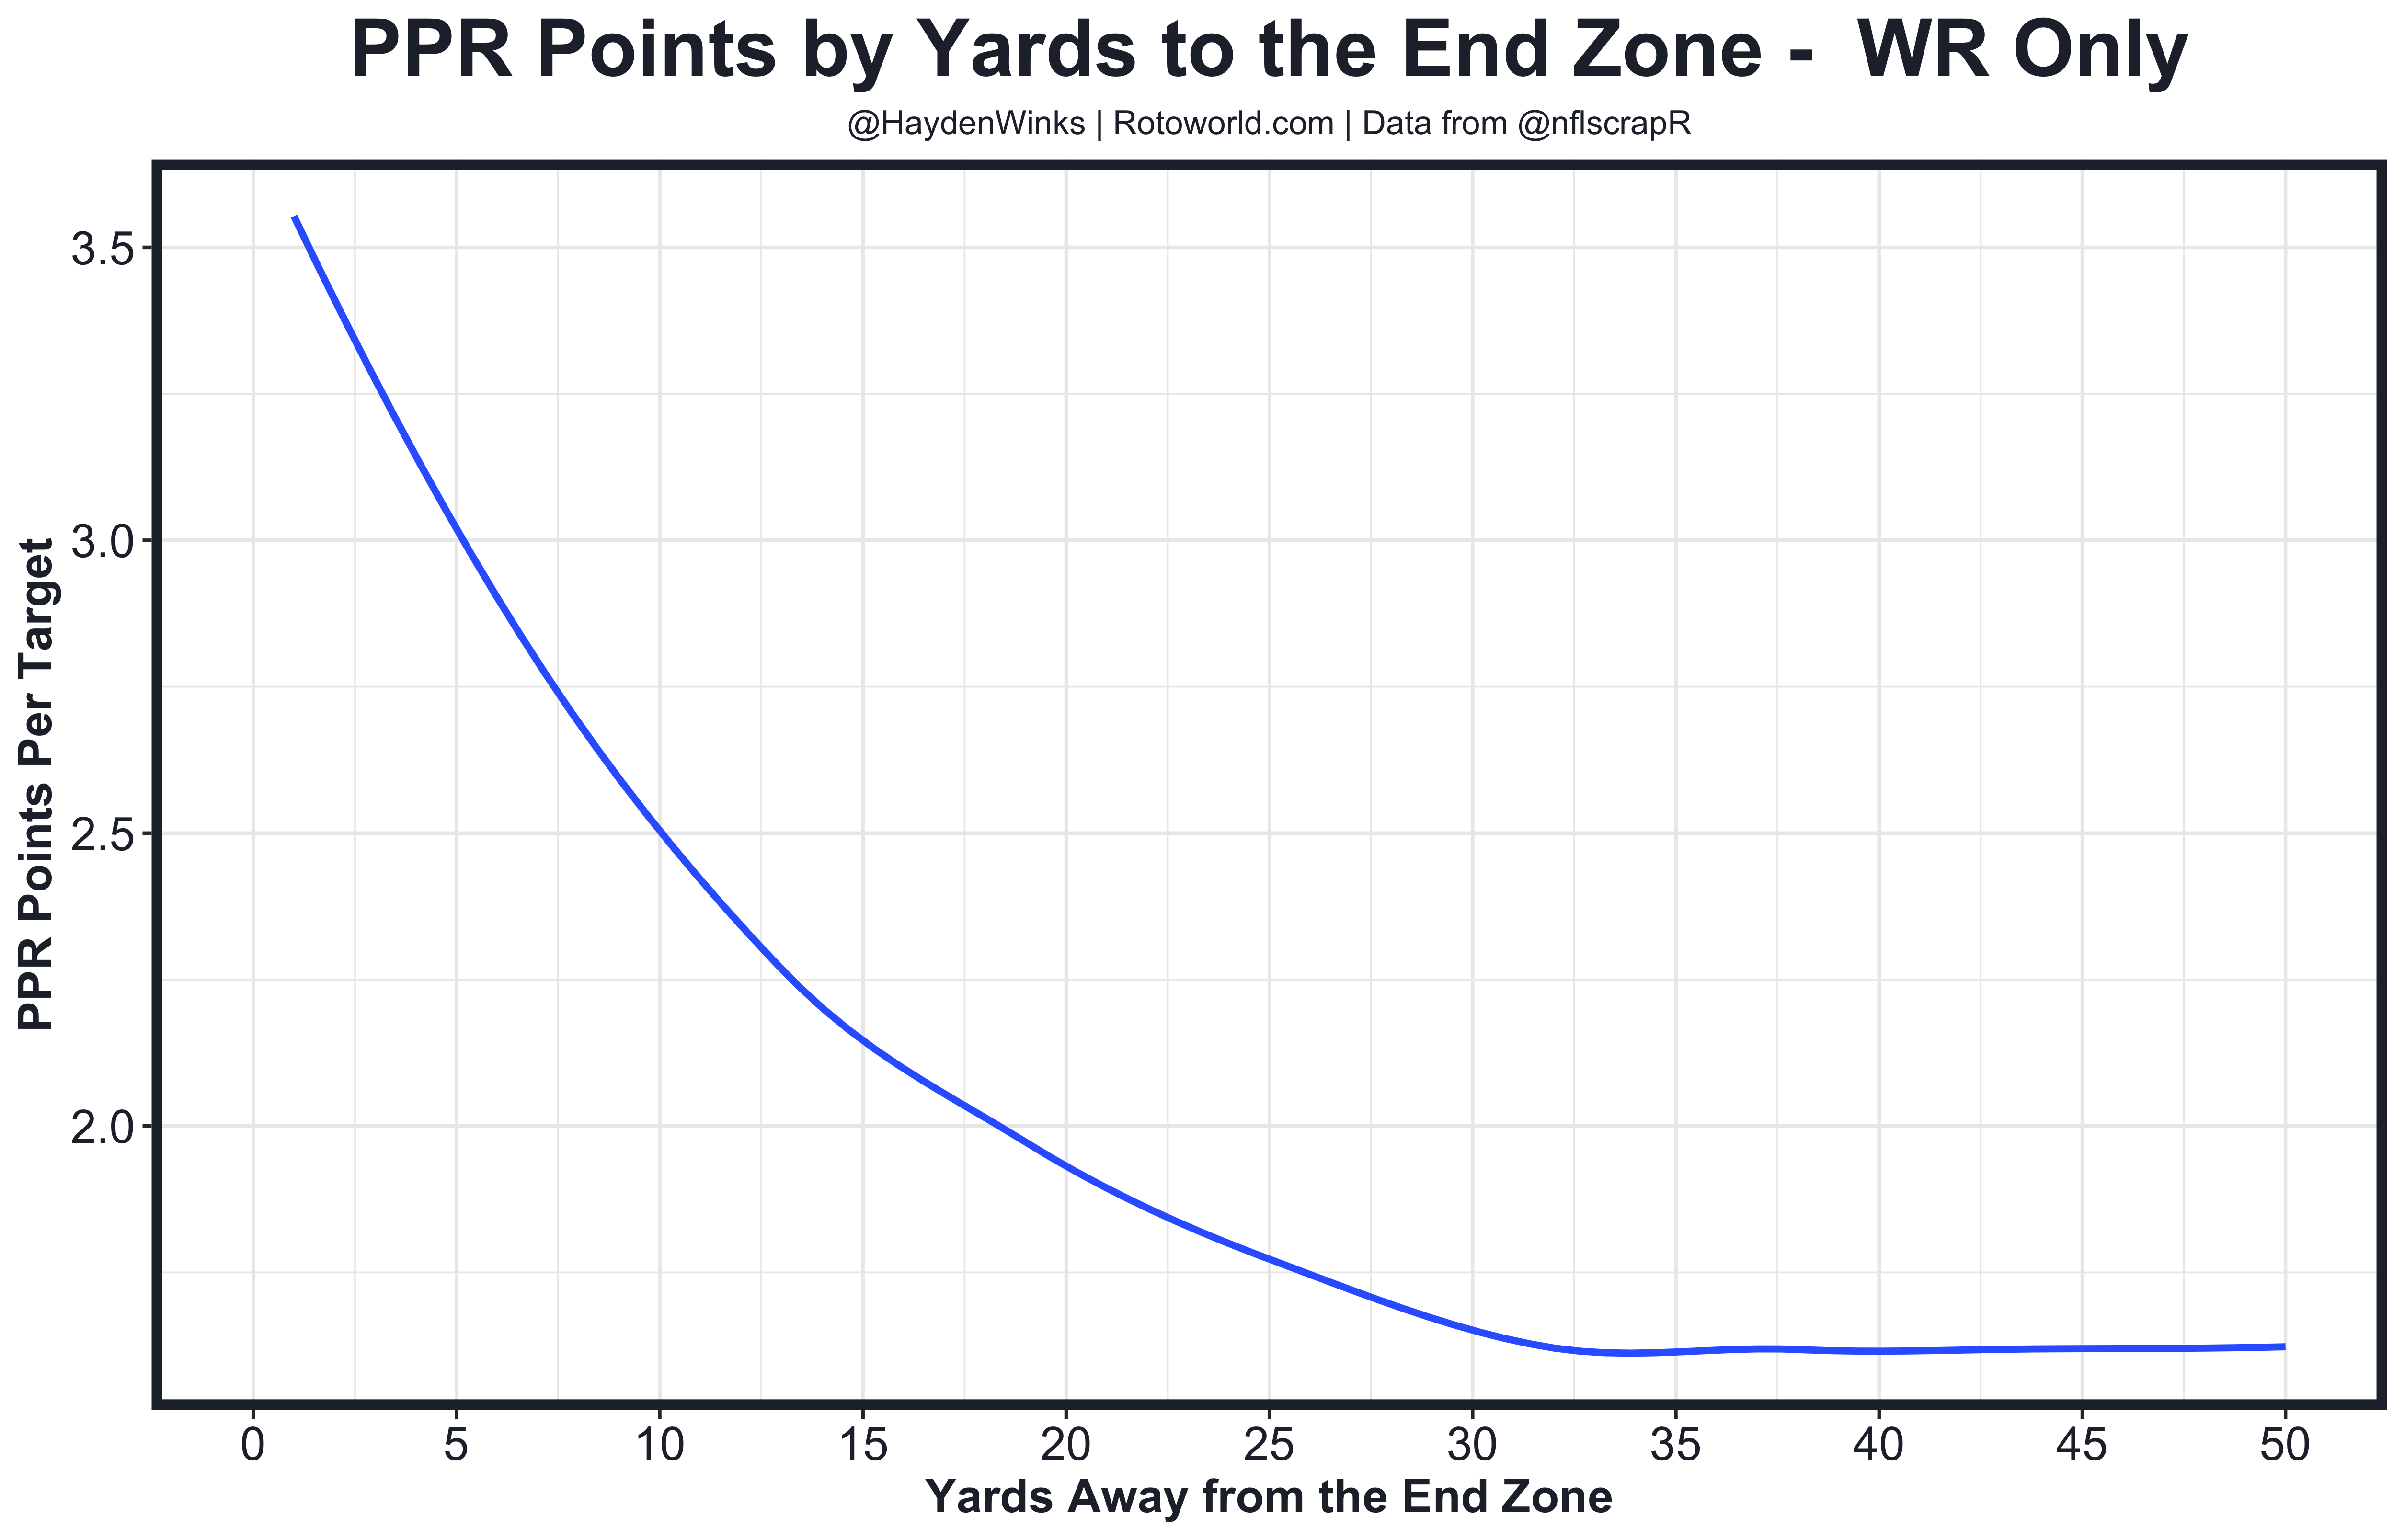 WR Red Zone